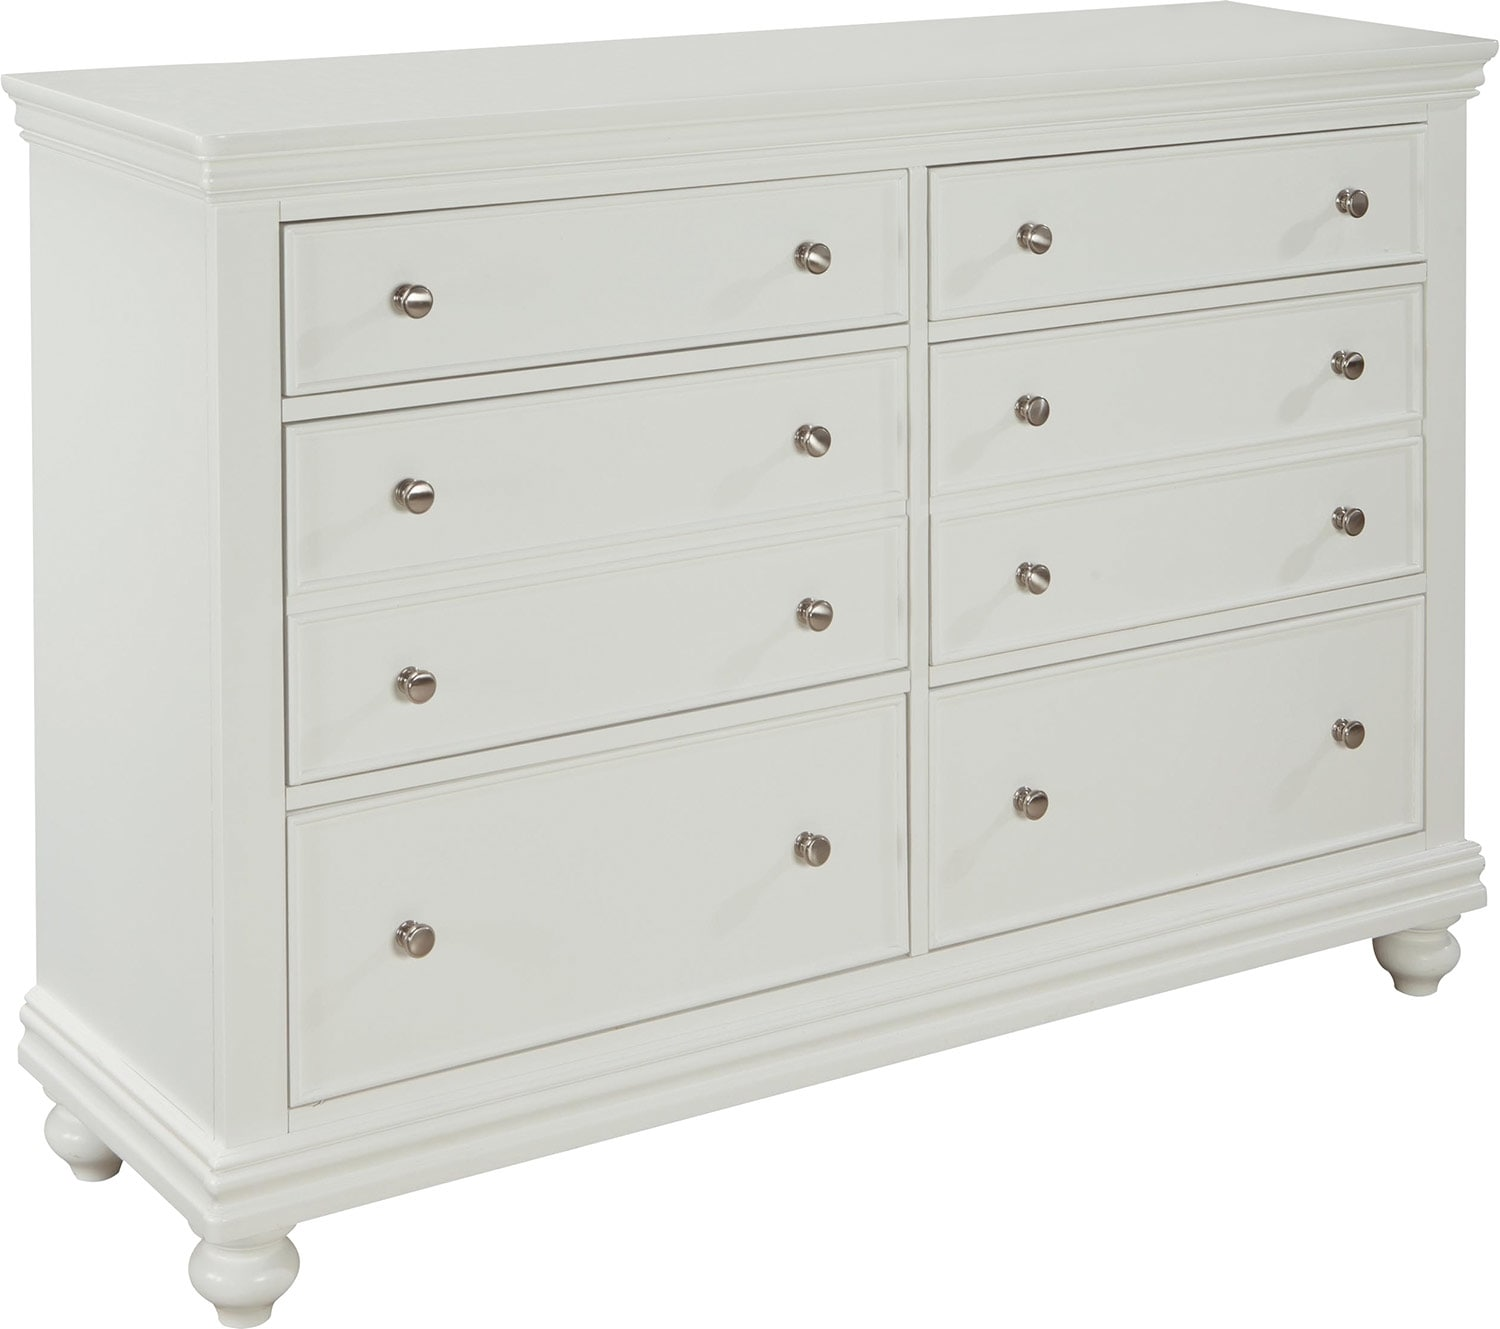 Bridgeport Dresser – White